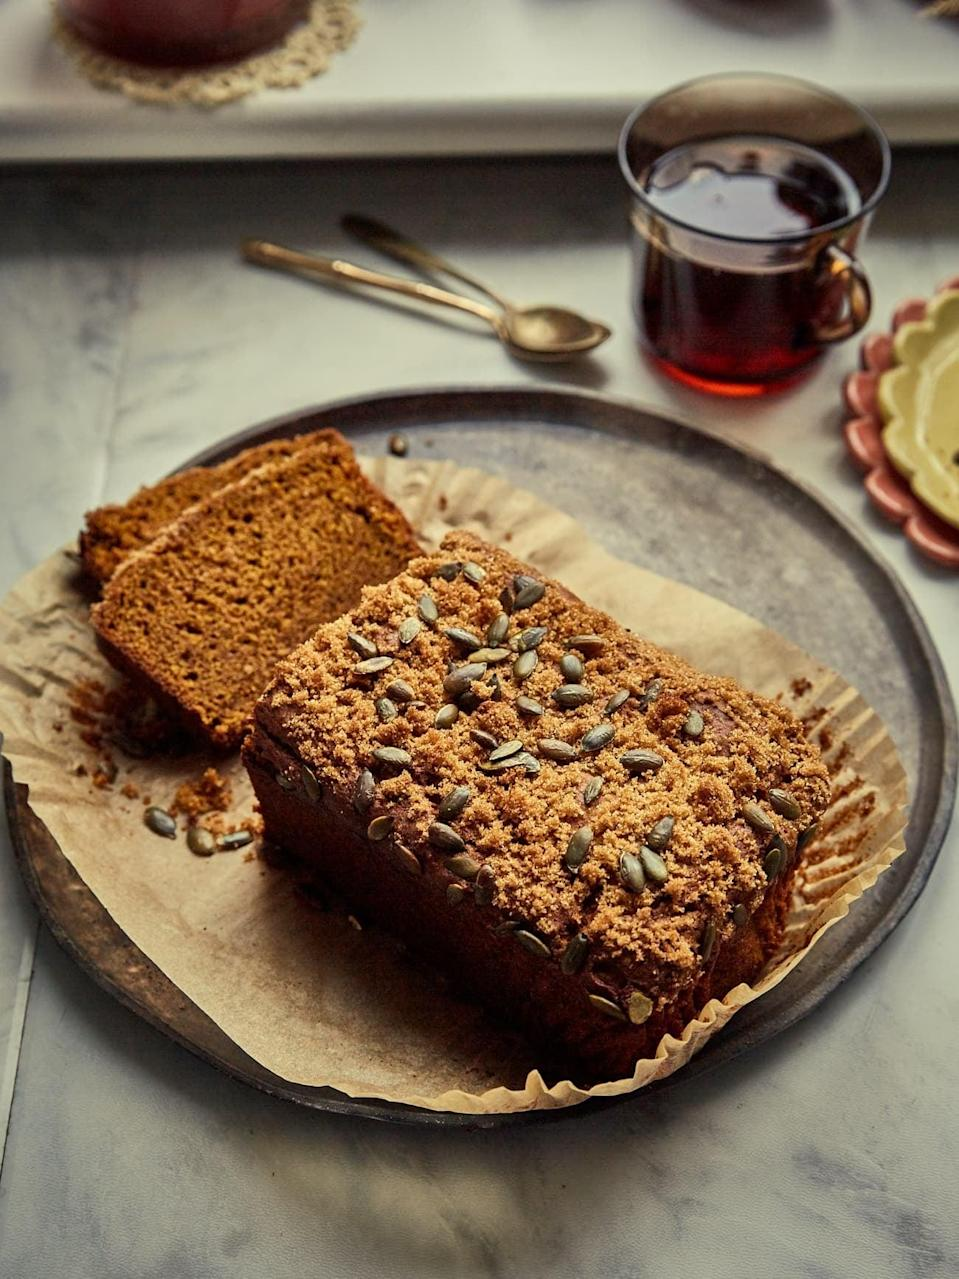 """<p>Made with pumpkin puree, light olive oil, and spices, this vegan bread is seriously good. Enjoy it for breakfast with a cup of coffee, for lunch with a spread of butter, or after dinner with a warm cup of cider.</p> <p><strong>Get the recipe</strong>: <a href=""""https://topwithcinnamon.com/sourdough-pumpkin-bread-vegan/?utm_source=feedburner&utm_medium=feed&utm_campaign=Feed%3A+TopWithCinnamon+%28Top+with+cinnamon%29"""" class=""""link rapid-noclick-resp"""" rel=""""nofollow noopener"""" target=""""_blank"""" data-ylk=""""slk:vegan sourdough pumpkin bread"""">vegan sourdough pumpkin bread</a></p>"""